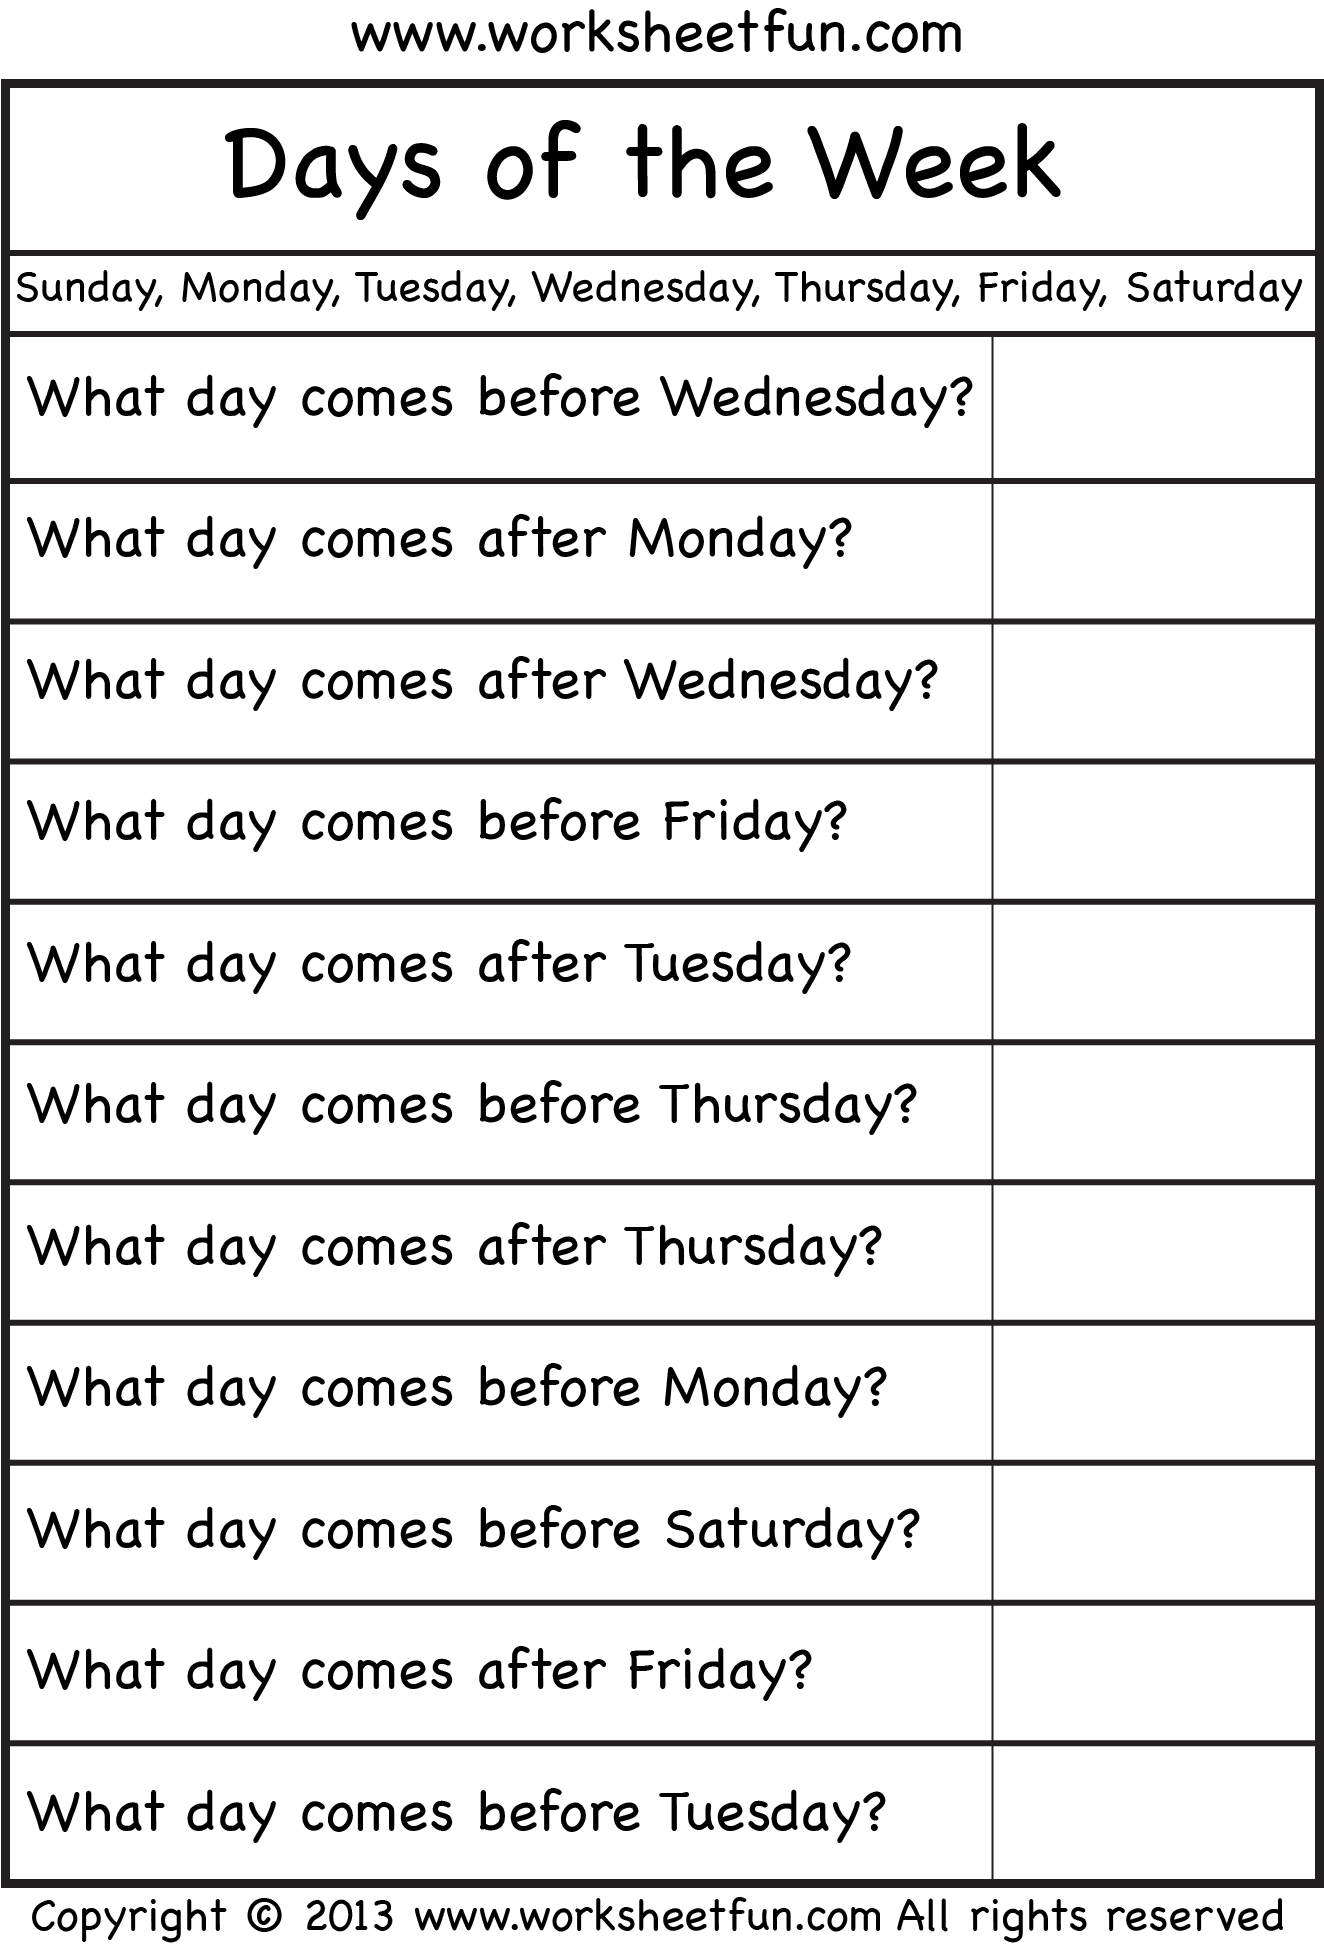 Days Of The Week Worksheet Free Printable Worksheets